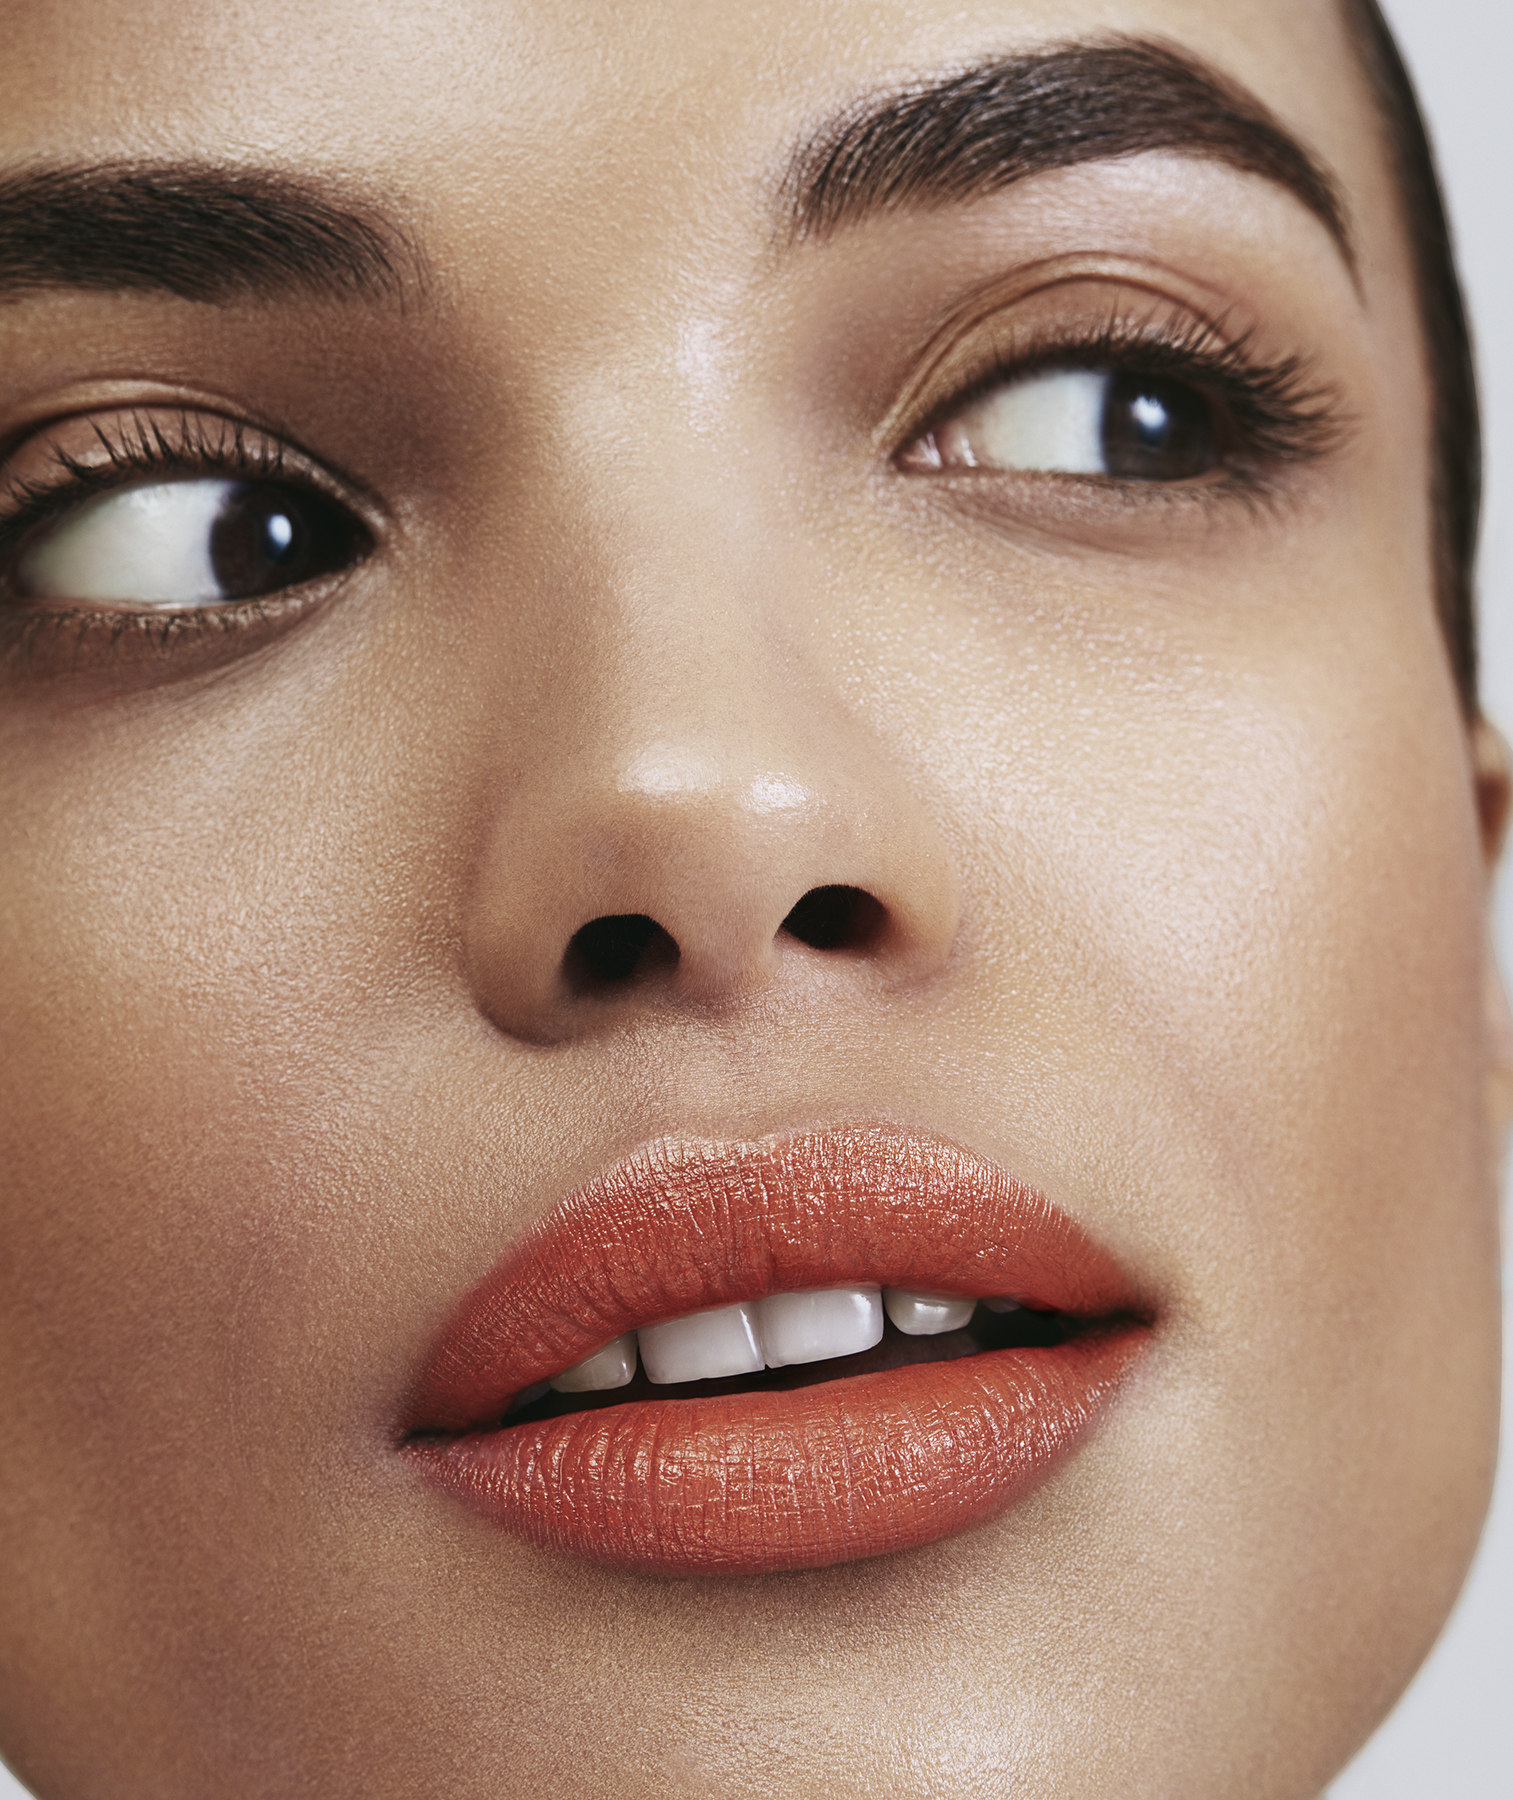 Model with tangerine lips